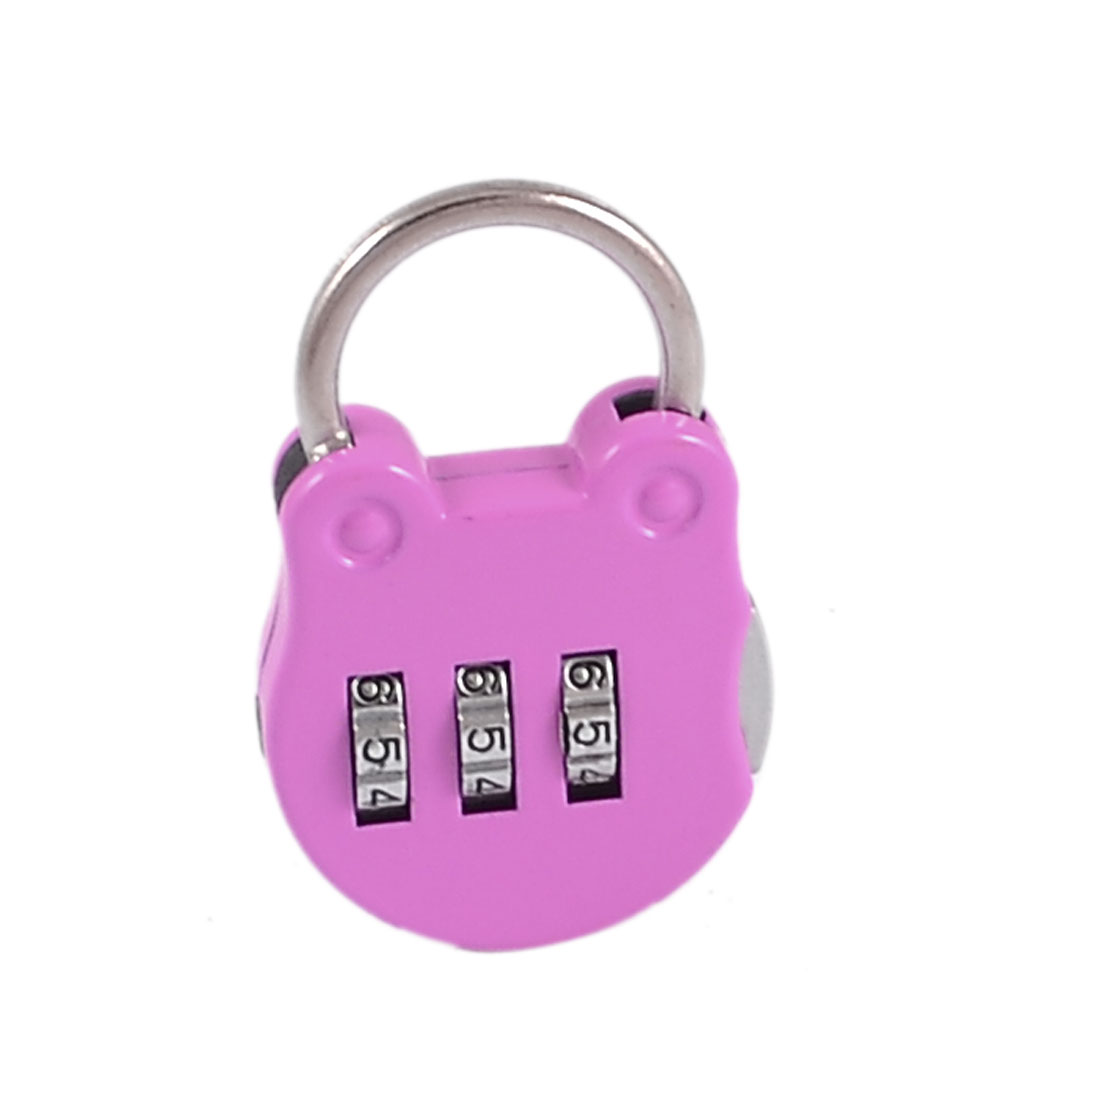 Light Purple Handbag Design 3 Digit Safe Private Boxes Combination Lock Padlock